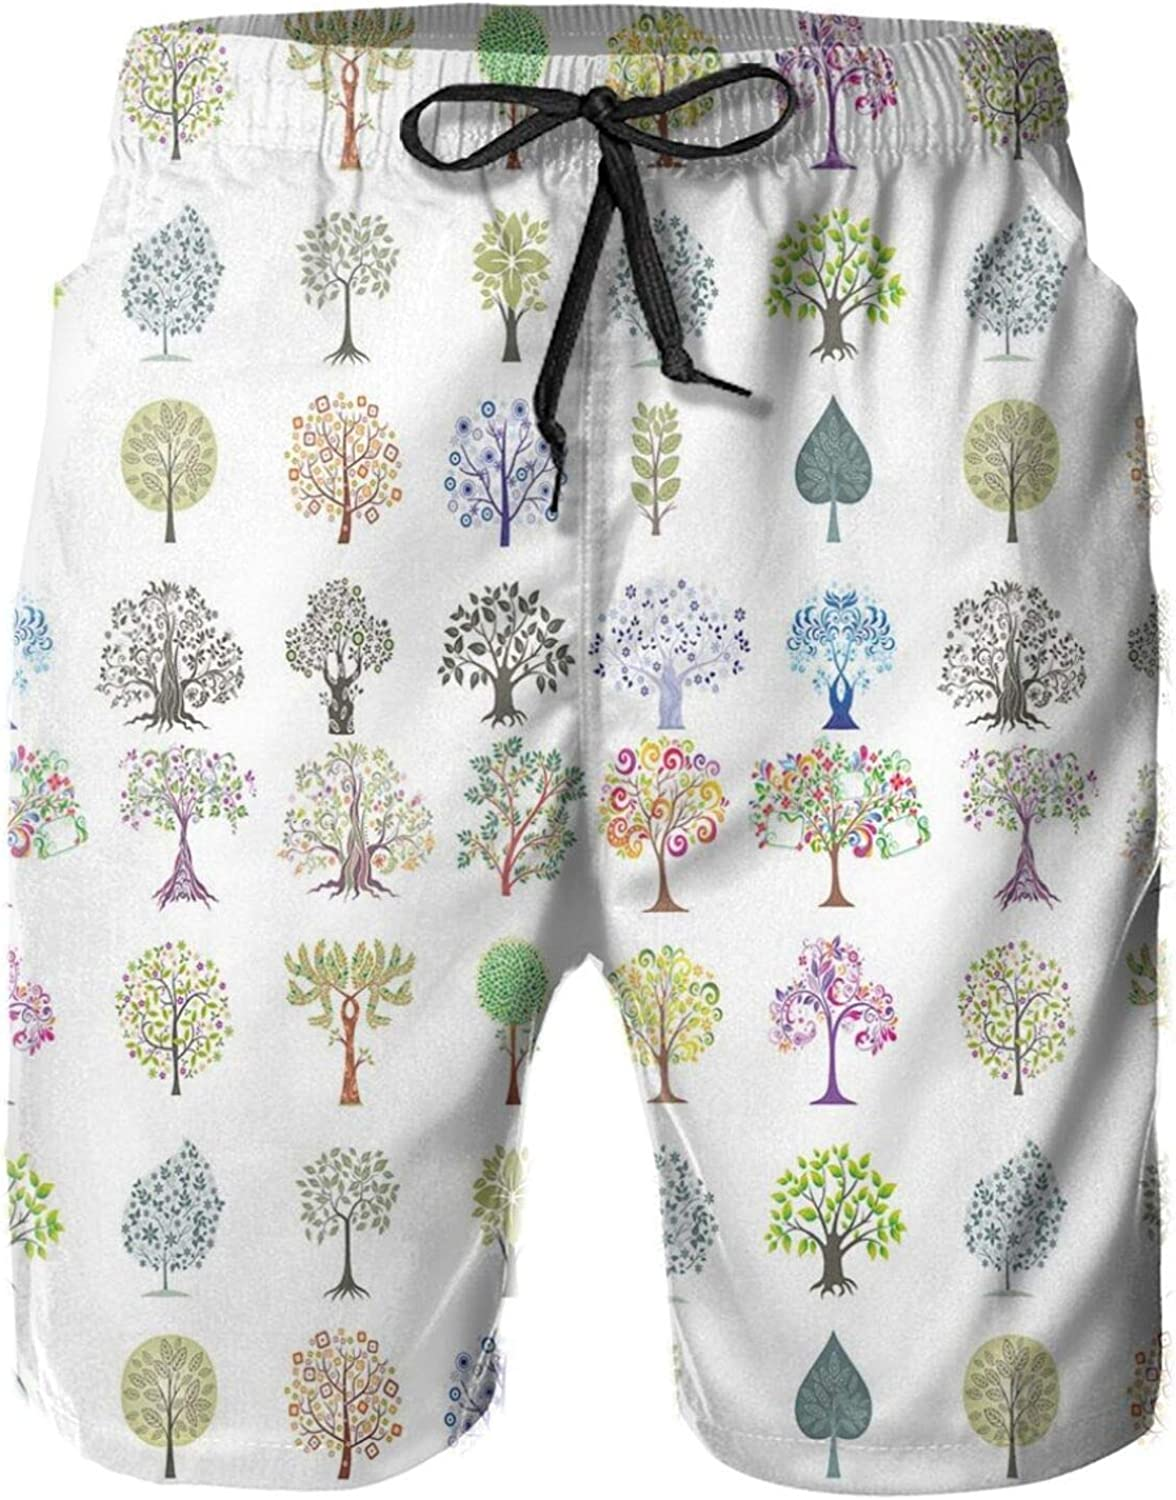 Different Type of Trees with Various Leaf Forms Mother Earth Season Inspirations Eco Printed Beach Shorts for Men Swim Trucks Mesh Lining,XXL